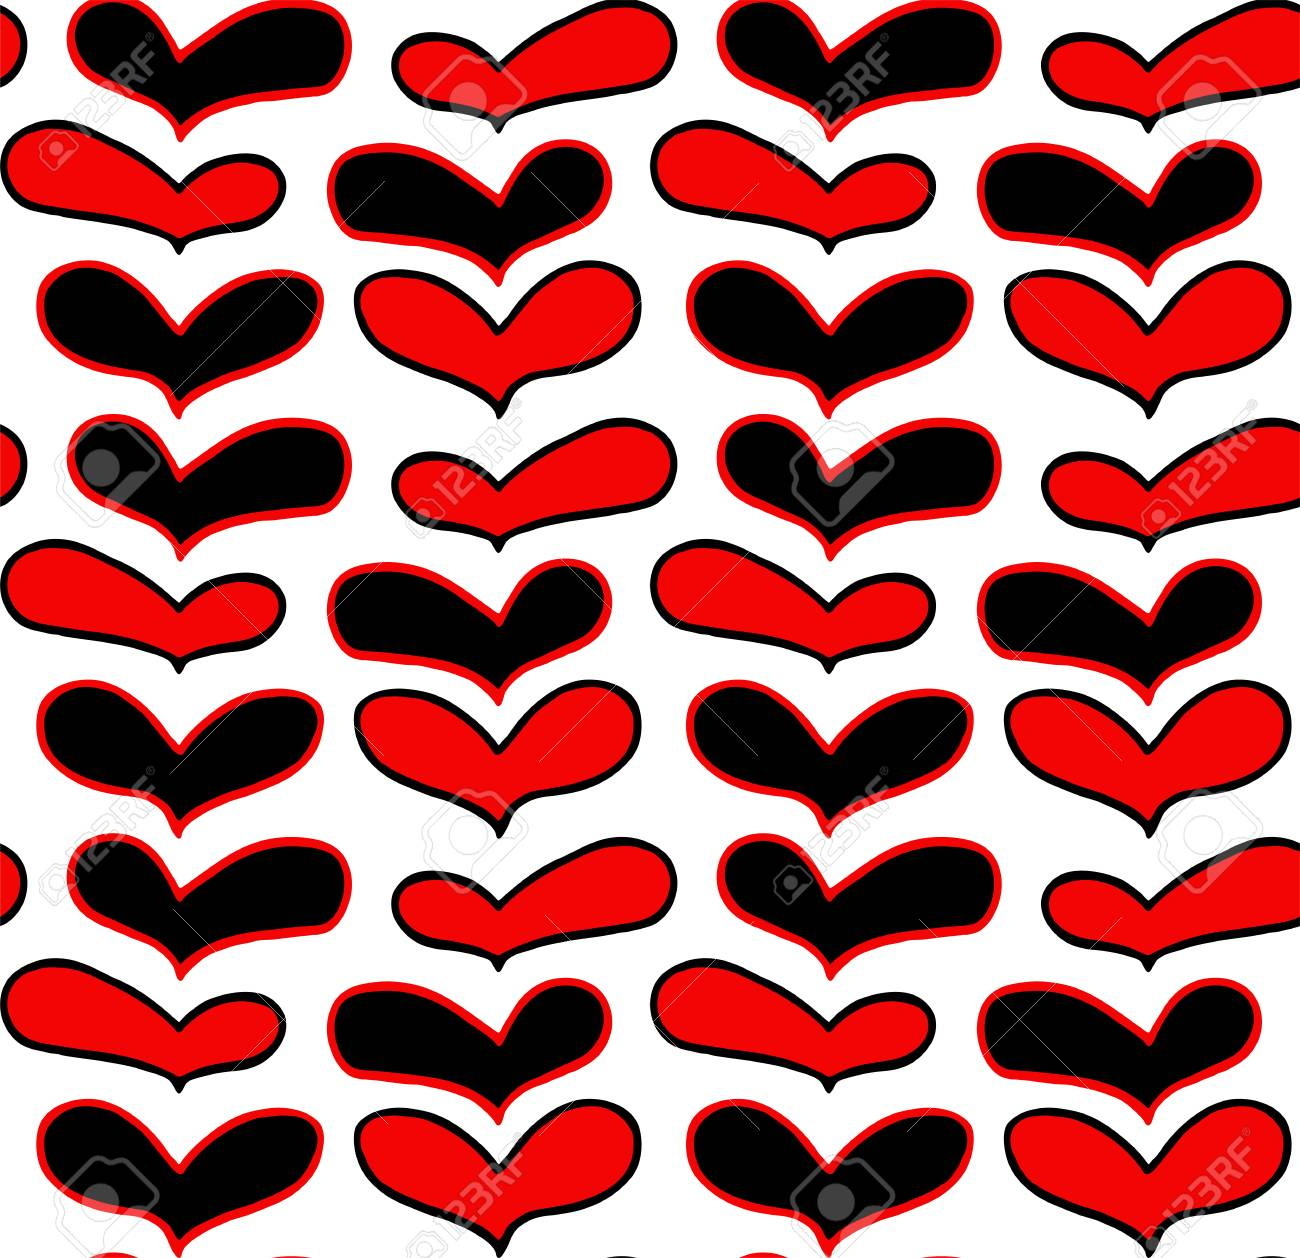 Vector Pattern Of Hand Drawn Red Black Hearts In Doodling Style